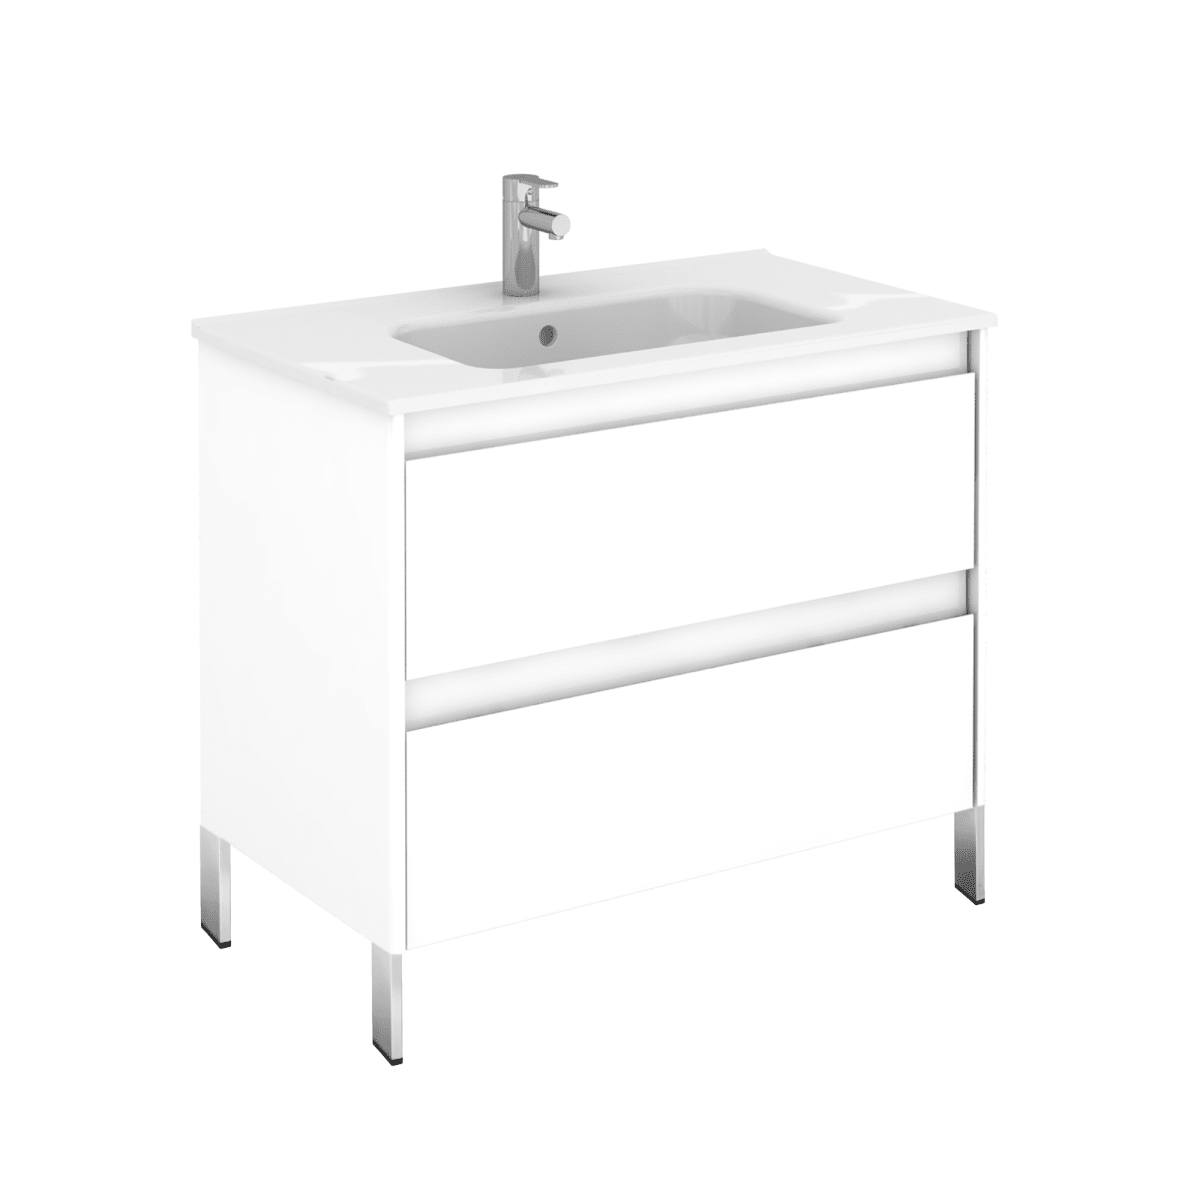 Ws Bath Collections Ambra 80f Wg Gloss White Ambra 32 Single Vanity Set With Engineered Wood Cabinet And Ceramic Vanity Top With Integrated Sink Faucet Com